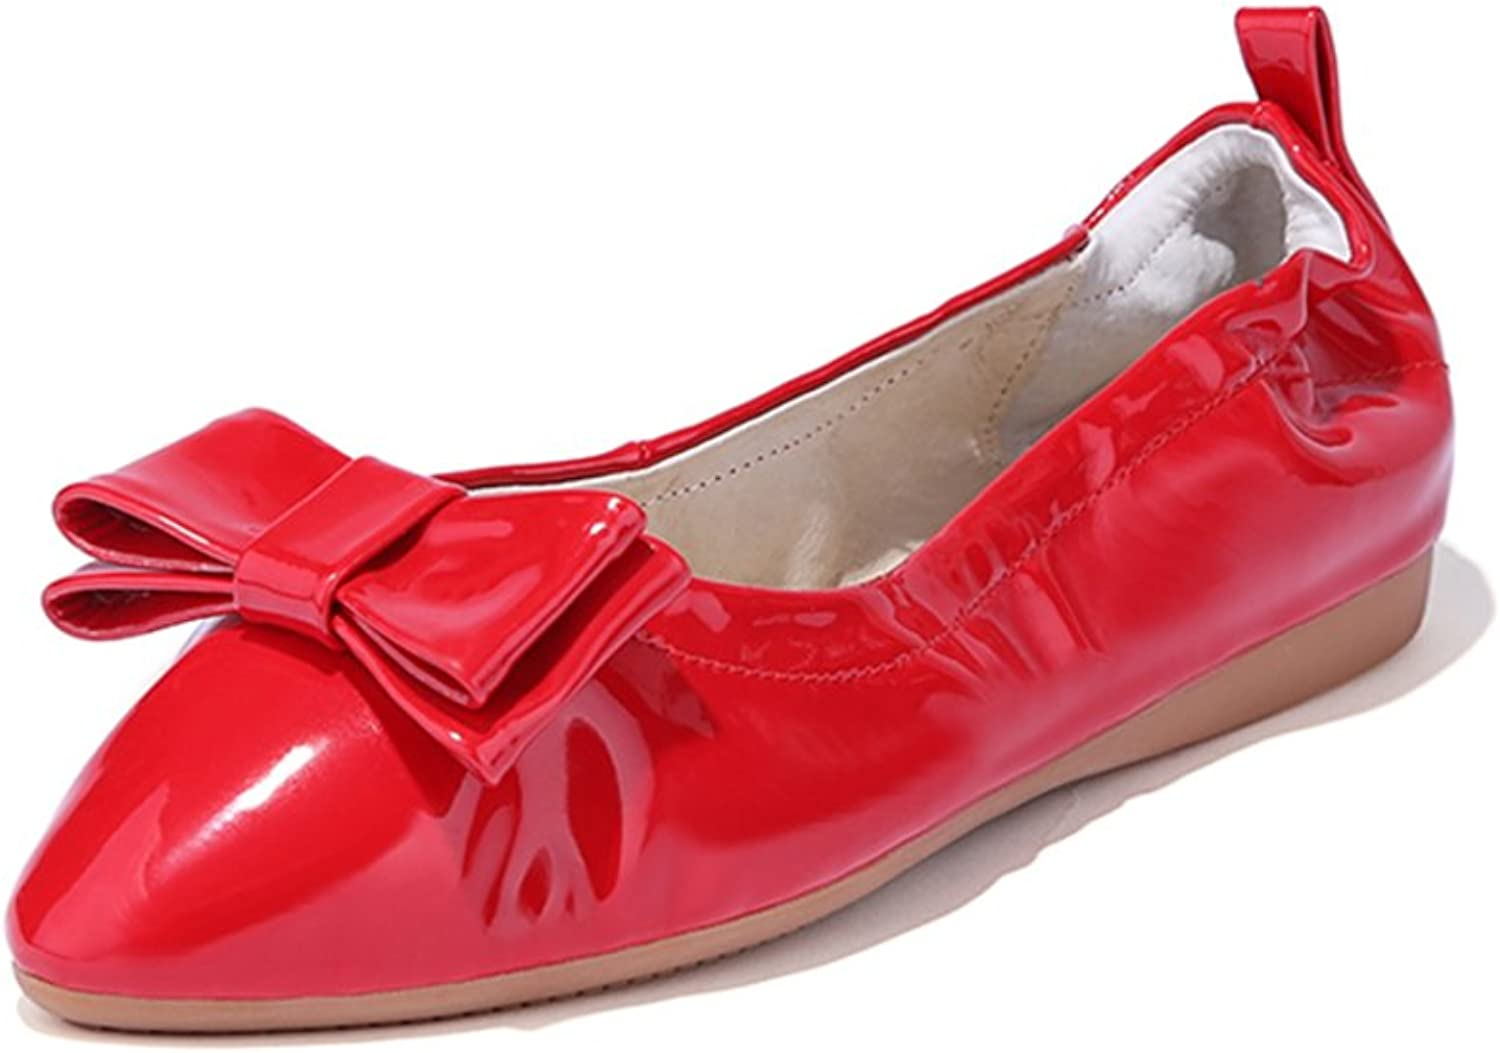 RHFDVGDS Pigskin flat pointed shoes in summer and autumn sweet egg roll shoes Doug shoes driving flat with light shoes